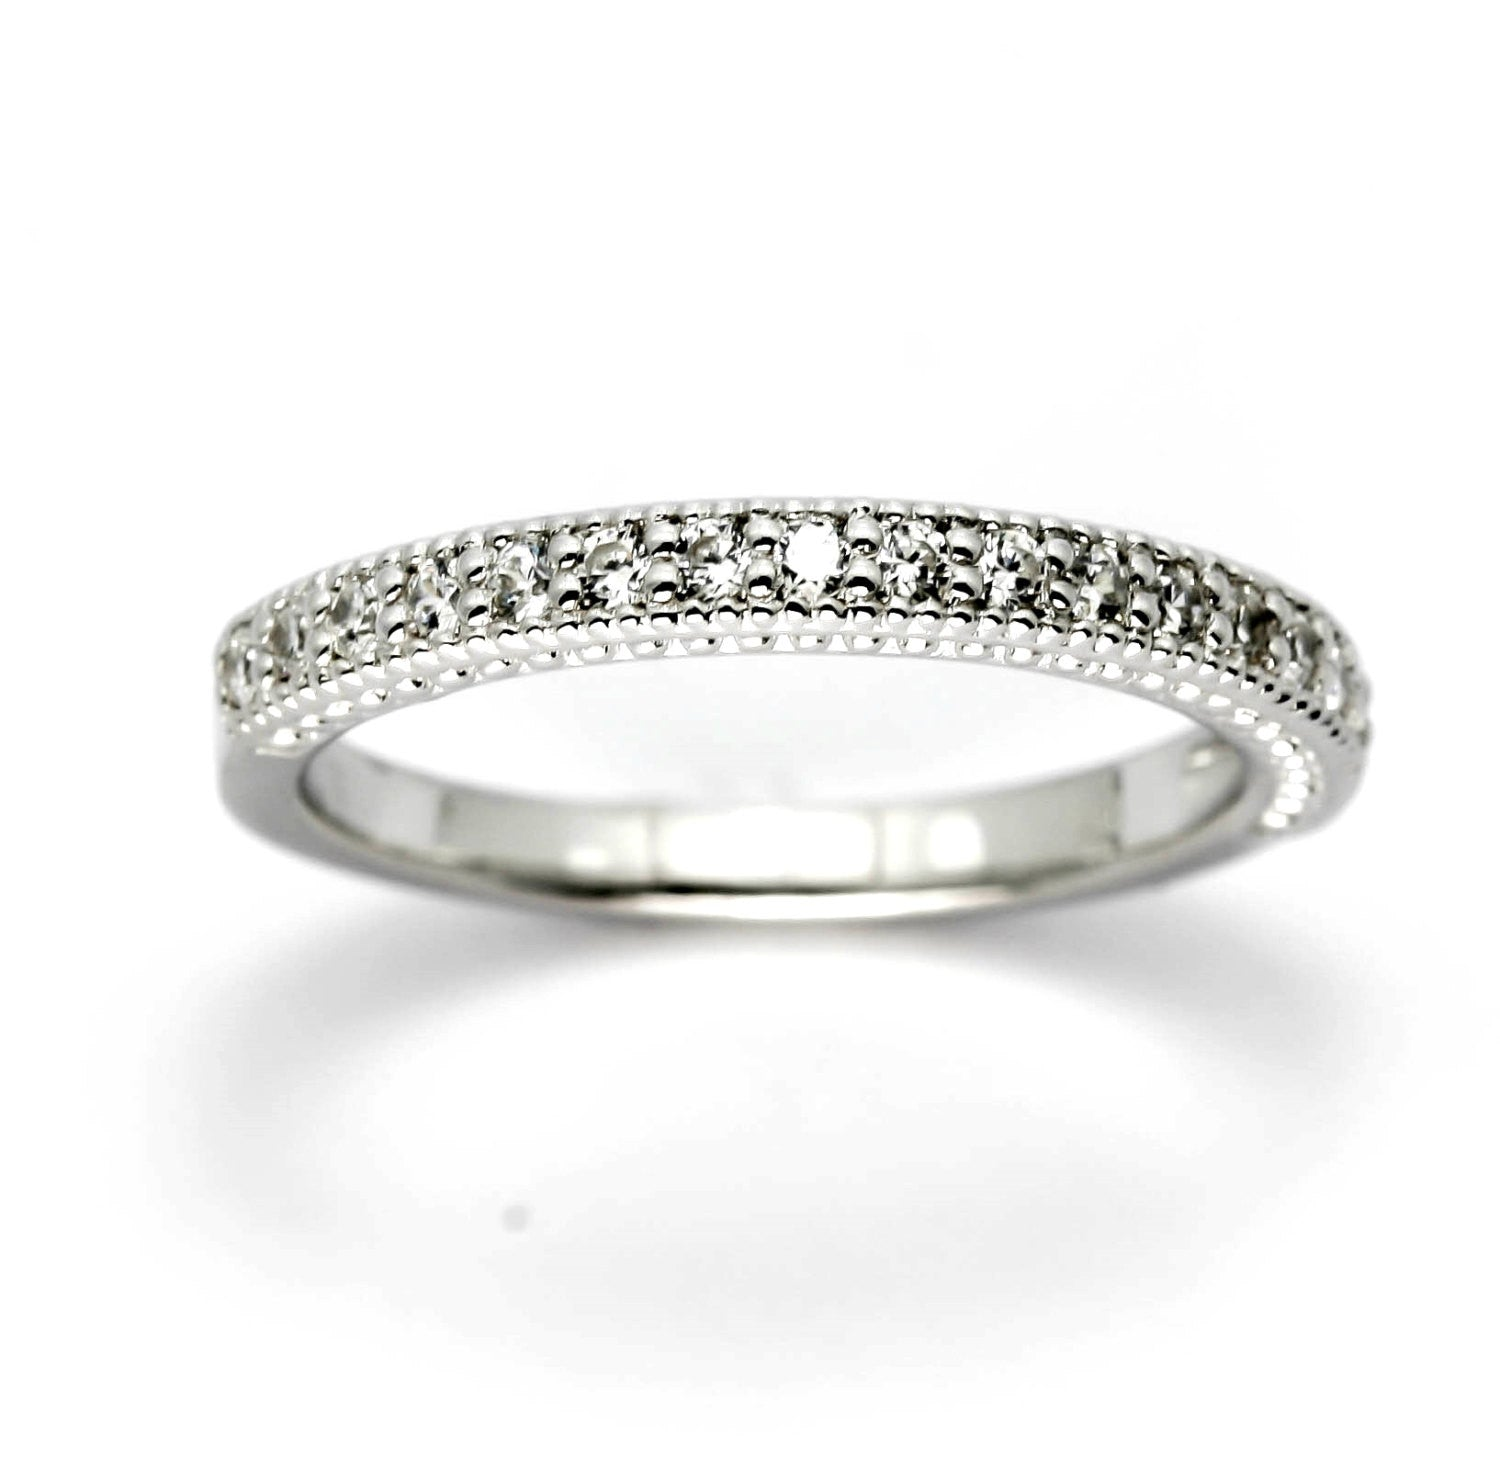 serpenti pave full wedding bands diamond jewelry white wide bvlgari gold ring band